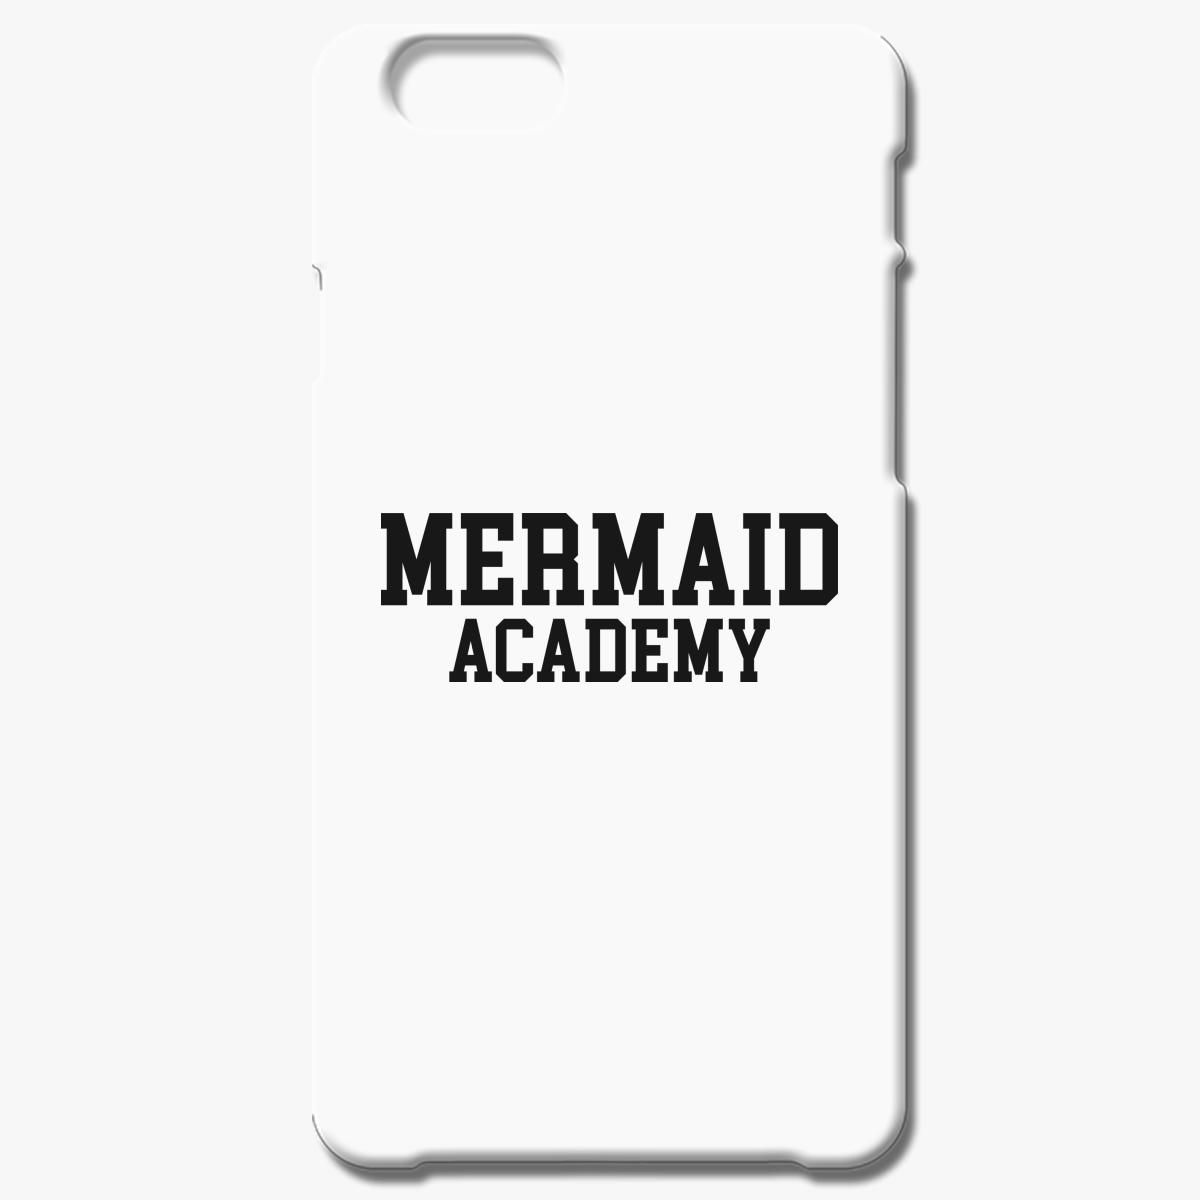 Mermaid Academy Iphone 6 6s Plus Case